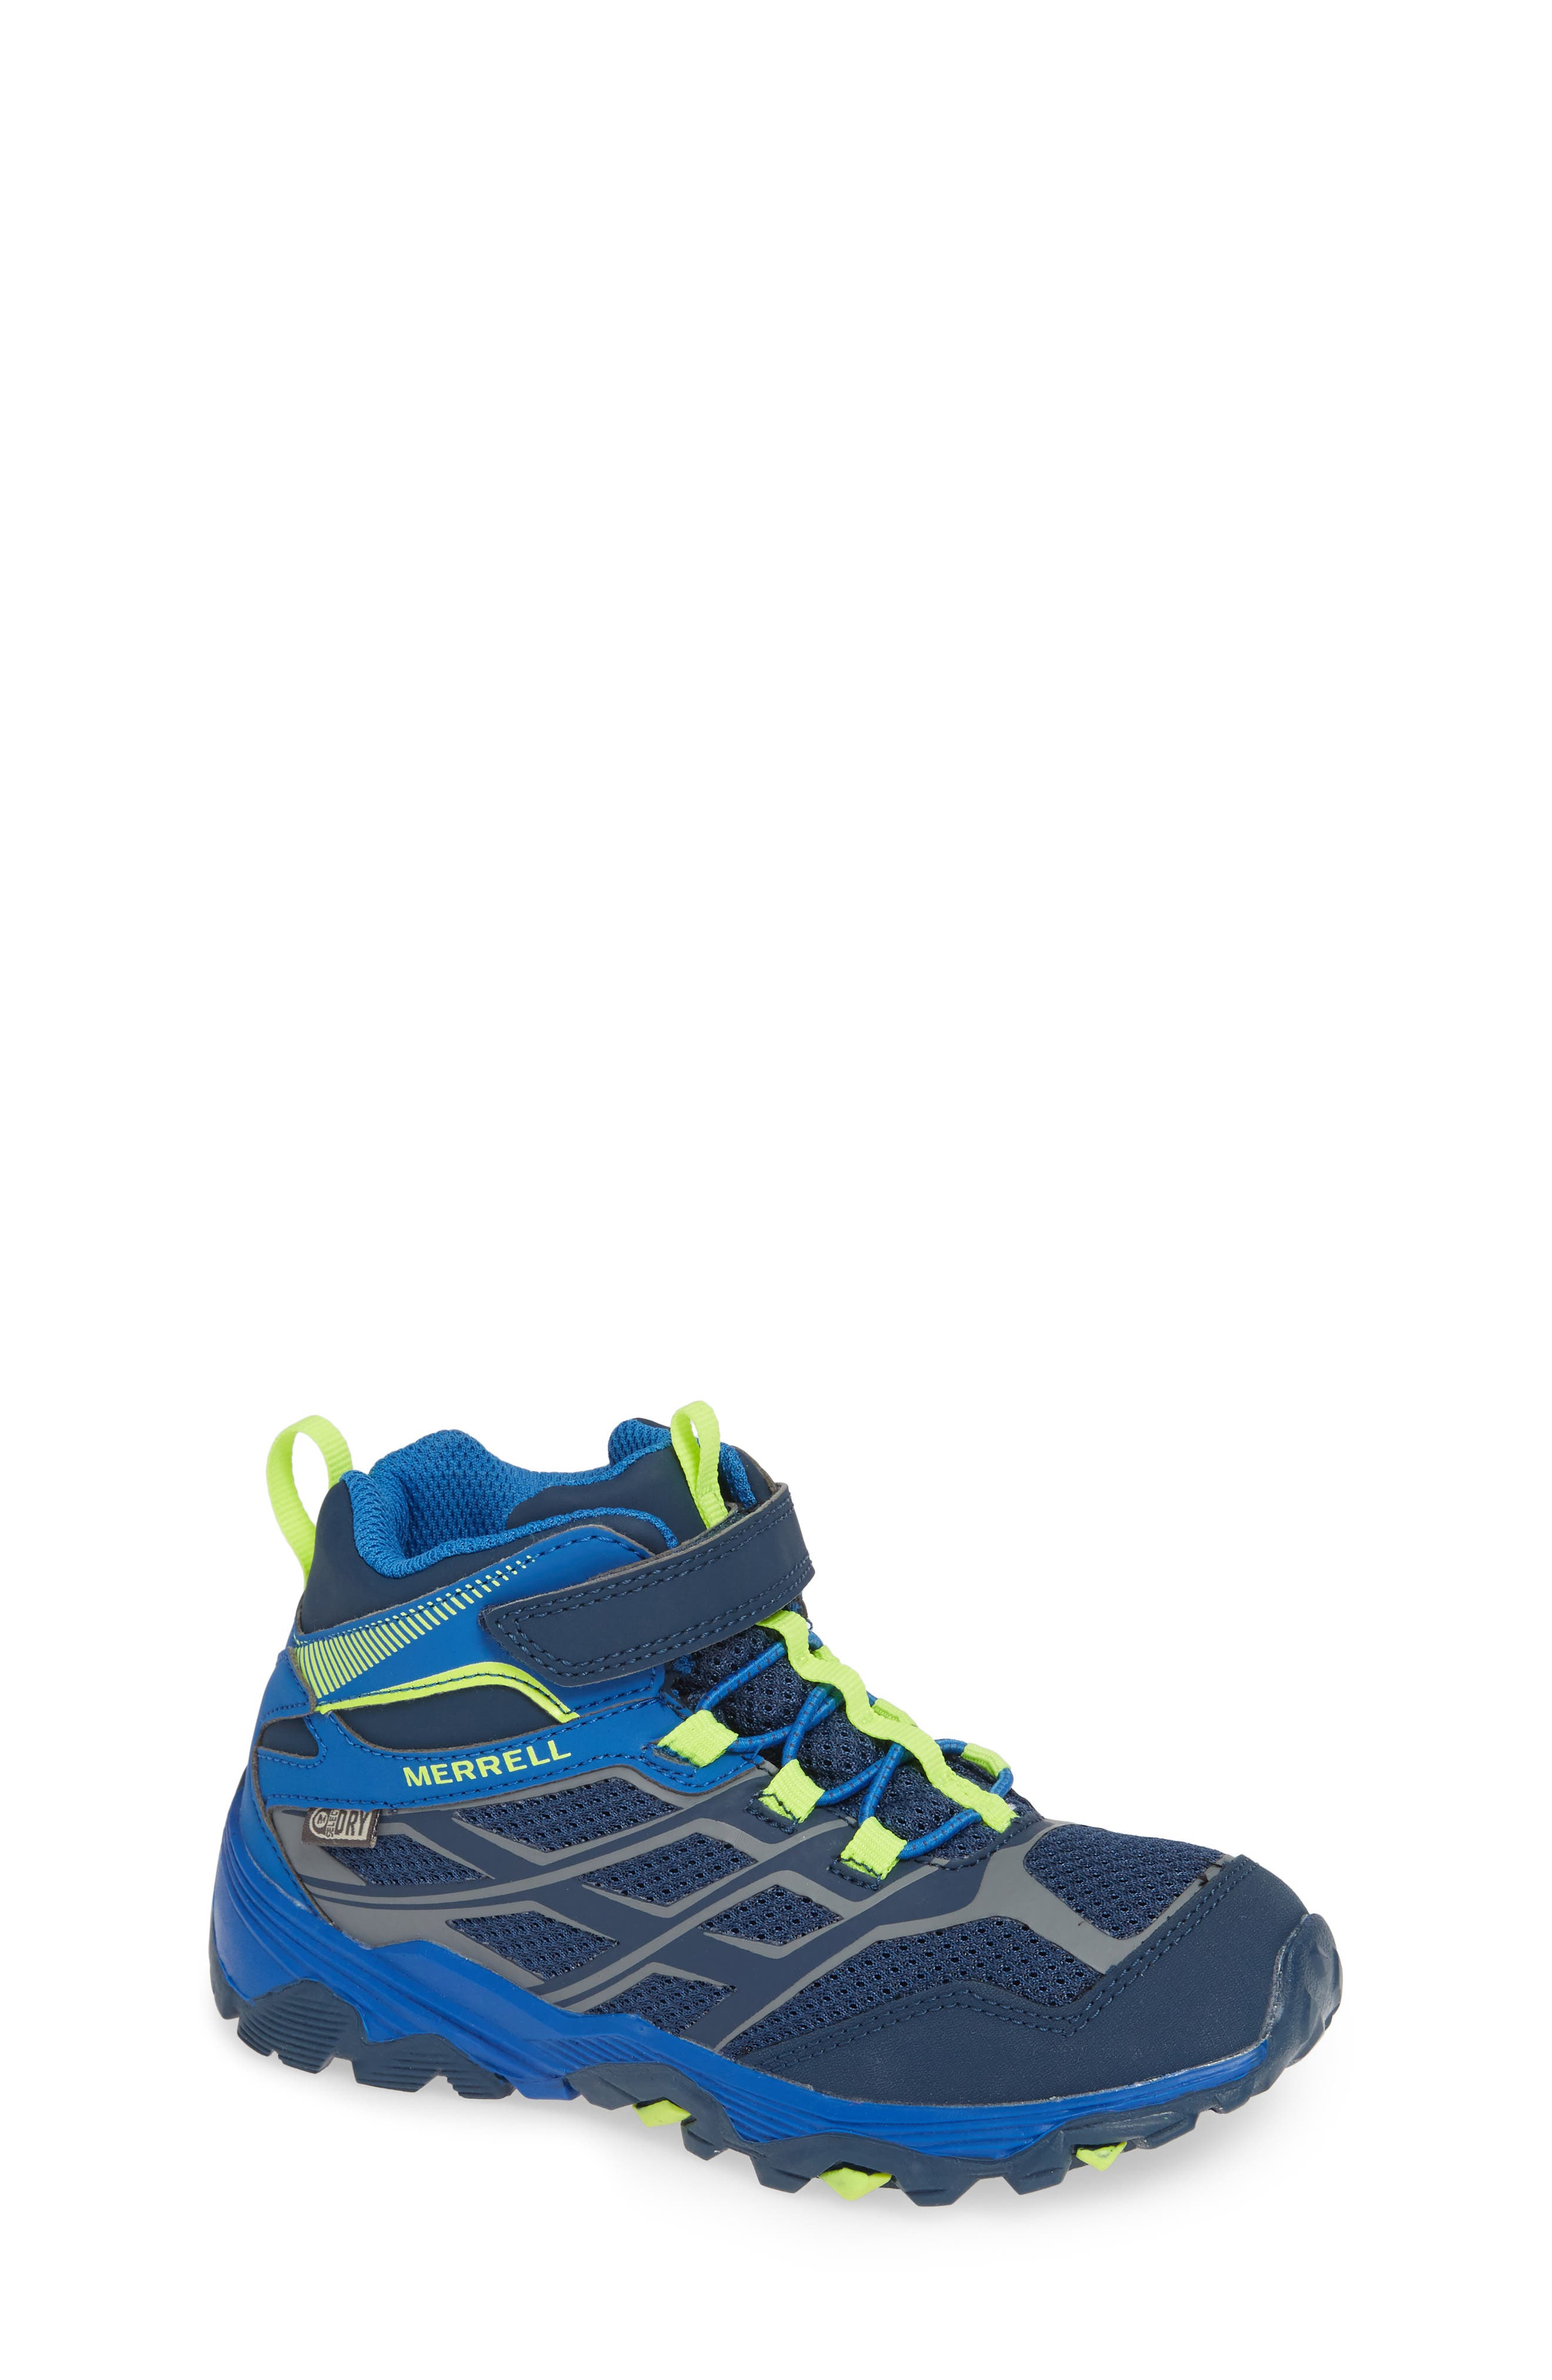 Moab FST Mid Top Waterproof Sneaker Boot,                         Main,                         color, NAVY/ COBALT